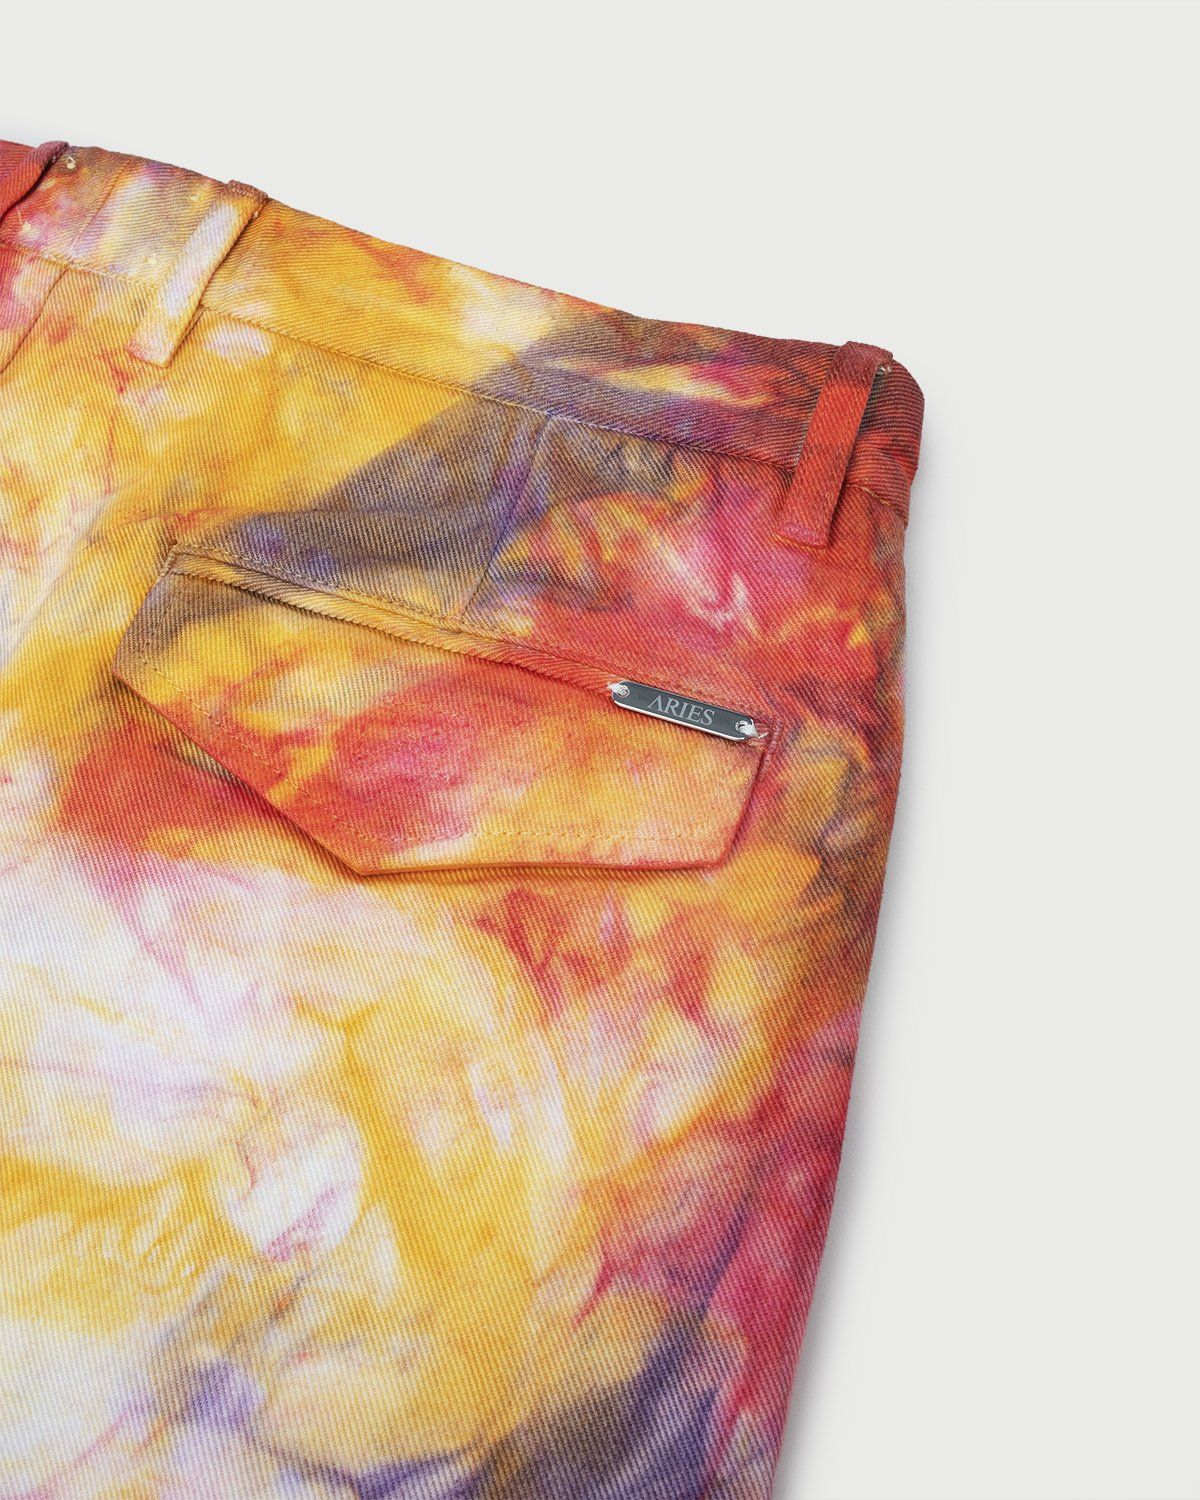 Aries - Tie Dye Chino Shorts Multicolor - Image 4